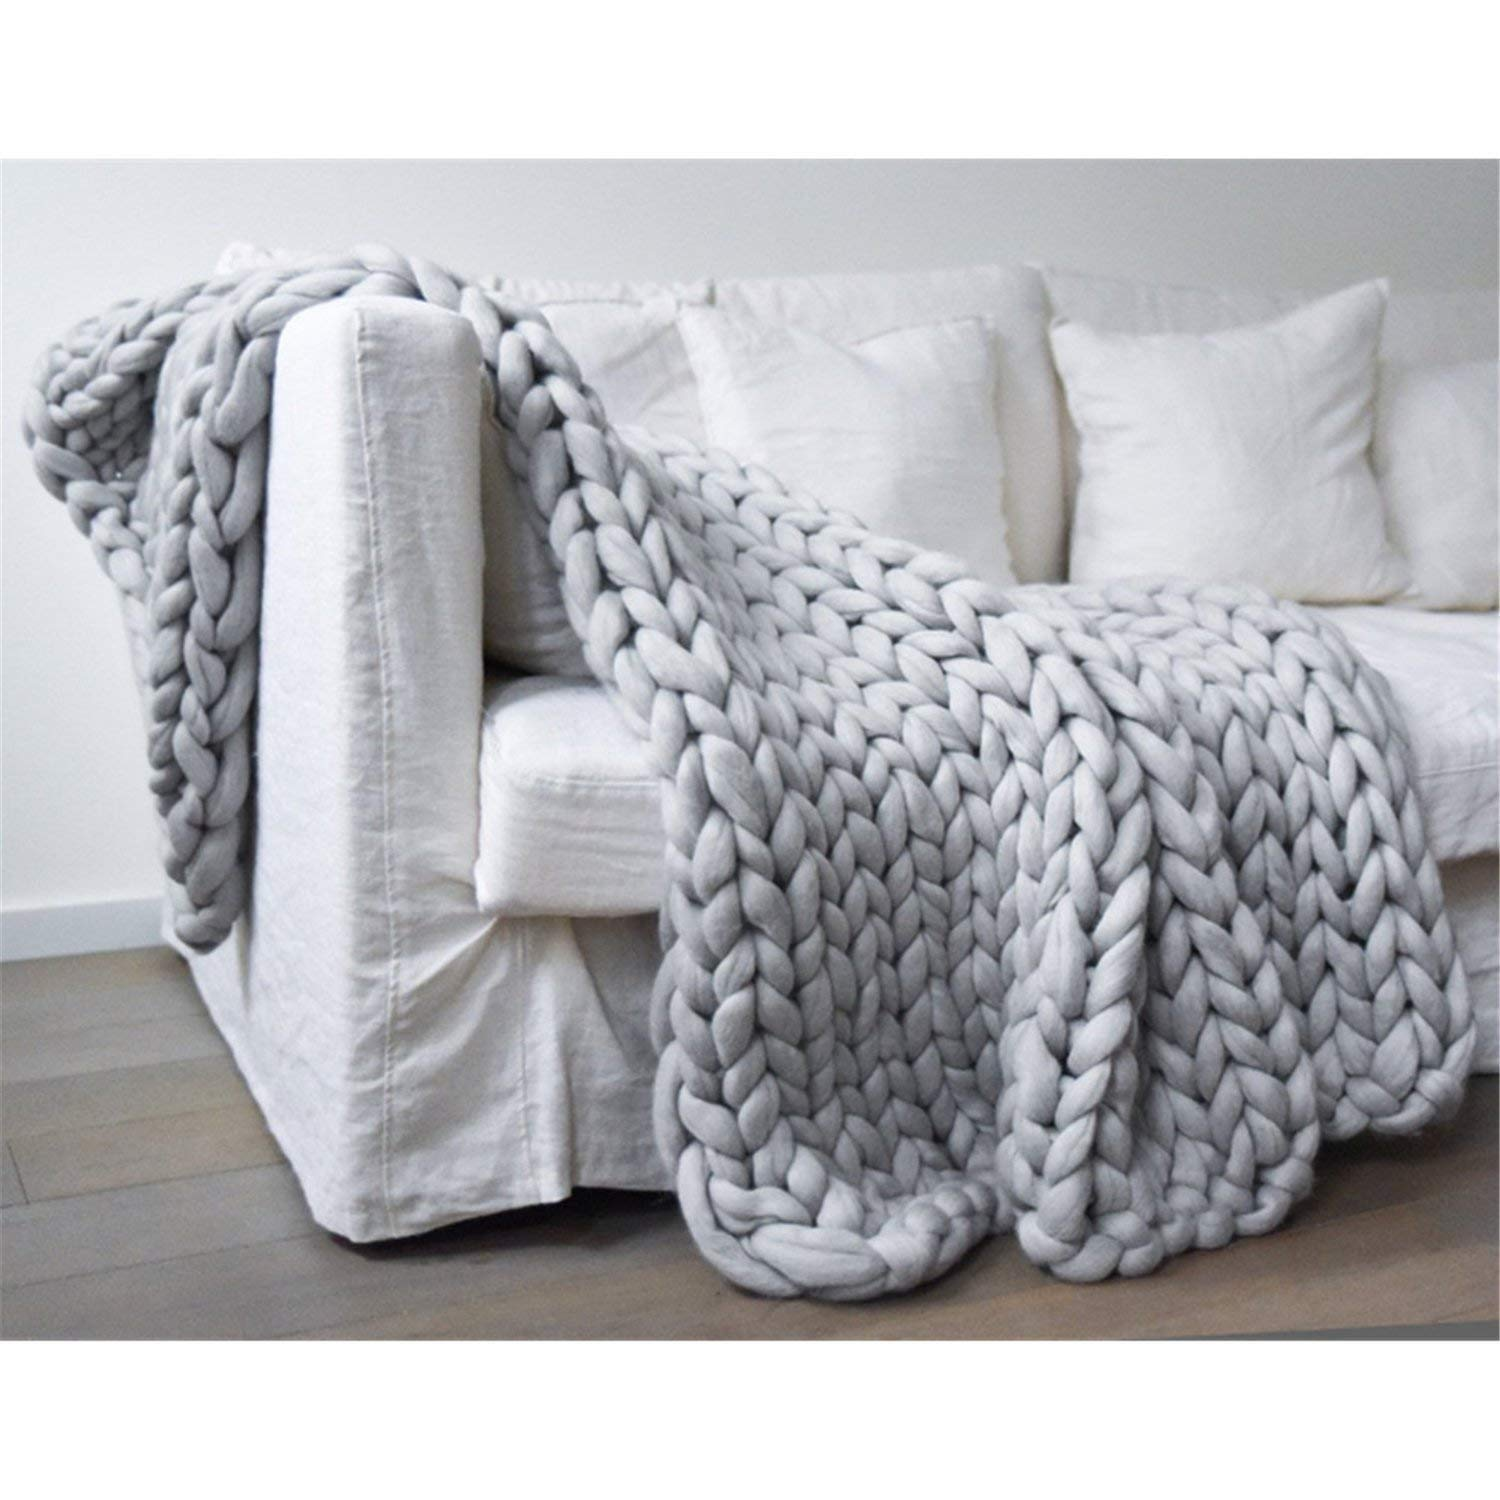 """EASTSURE Chunky Knit Blanket Heavy Thick Yarn Wool Bulky Hand Knitted Throw Soft Sofa Blanket Pet Bed Home Decor Gift (Grey) 32""""x32"""""""